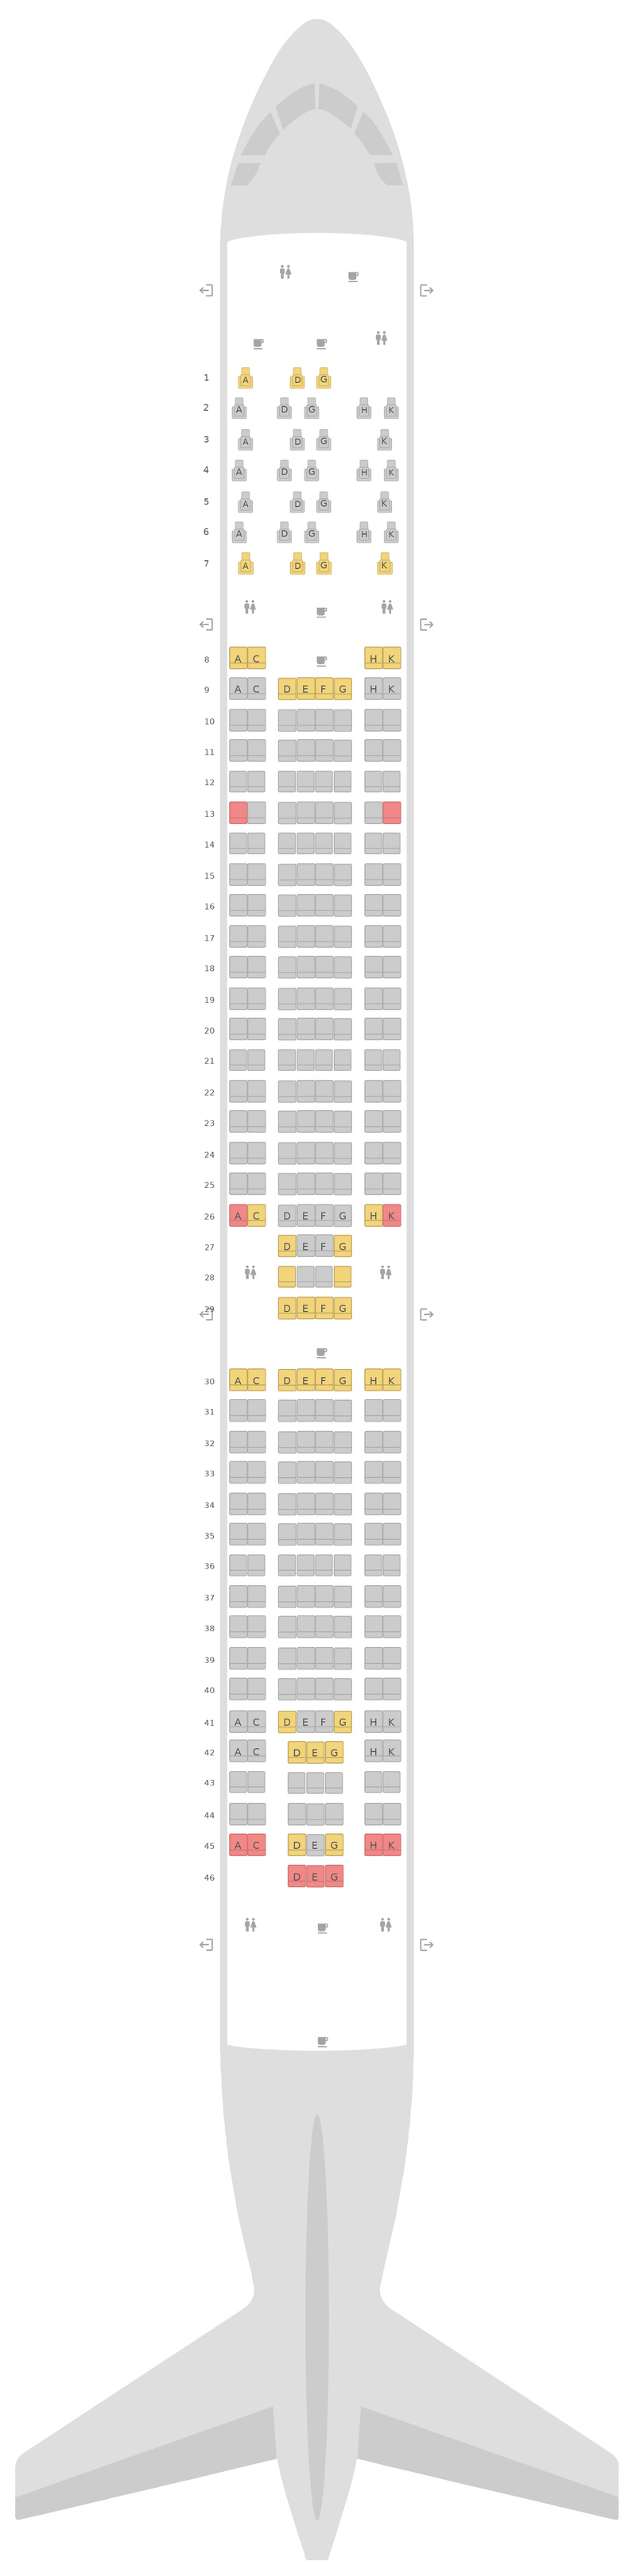 Seat Map Airbus A330-300 (333) Aer Lingus